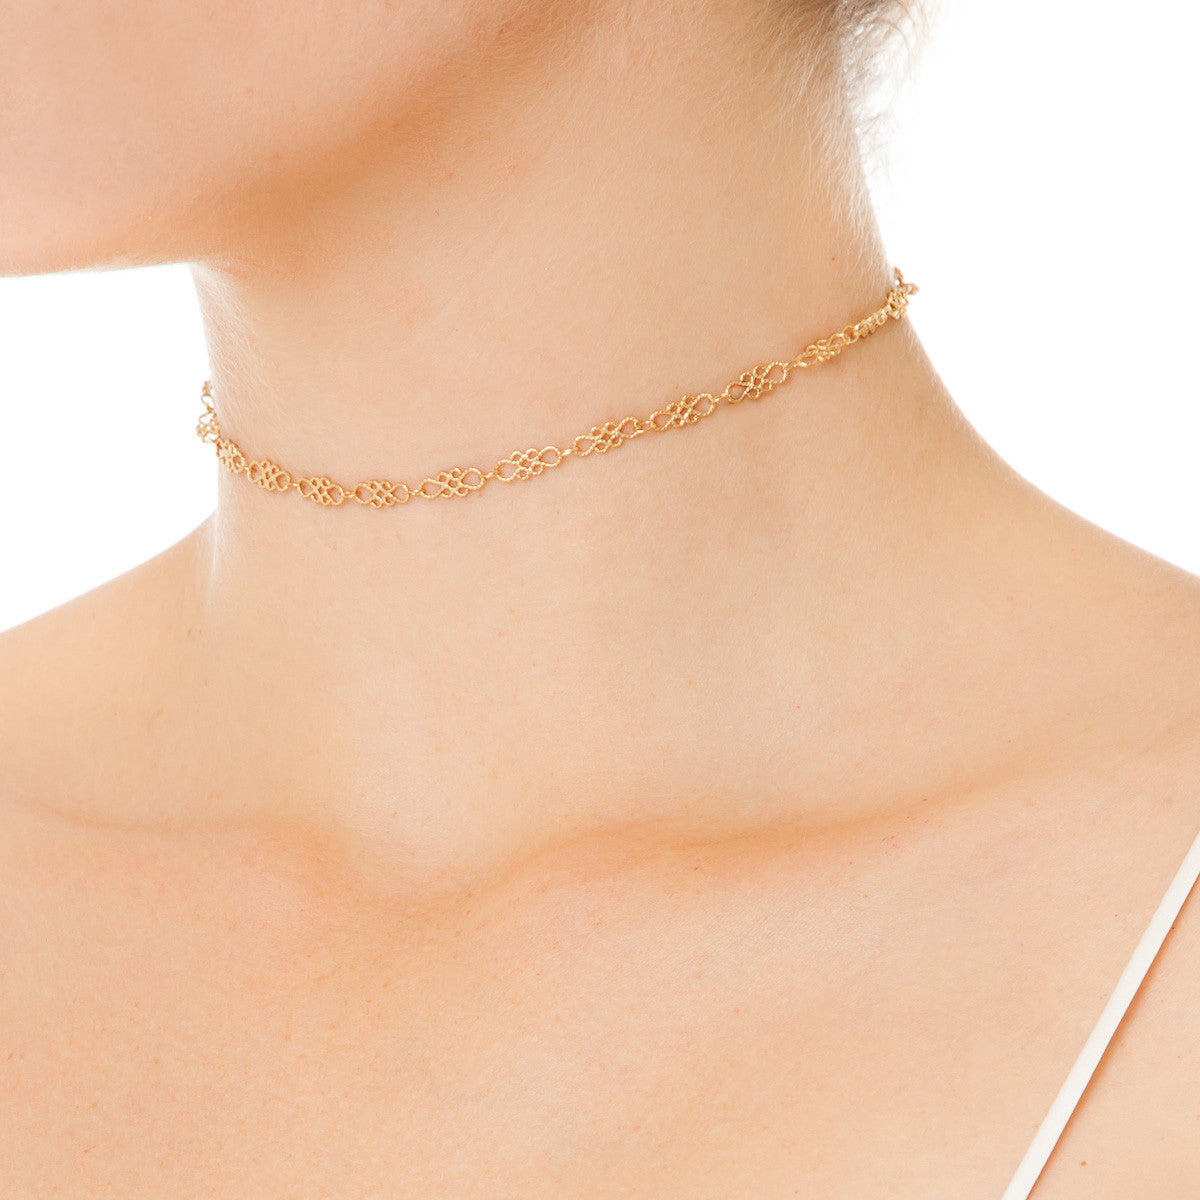 Are You Am I - Fiura Choker